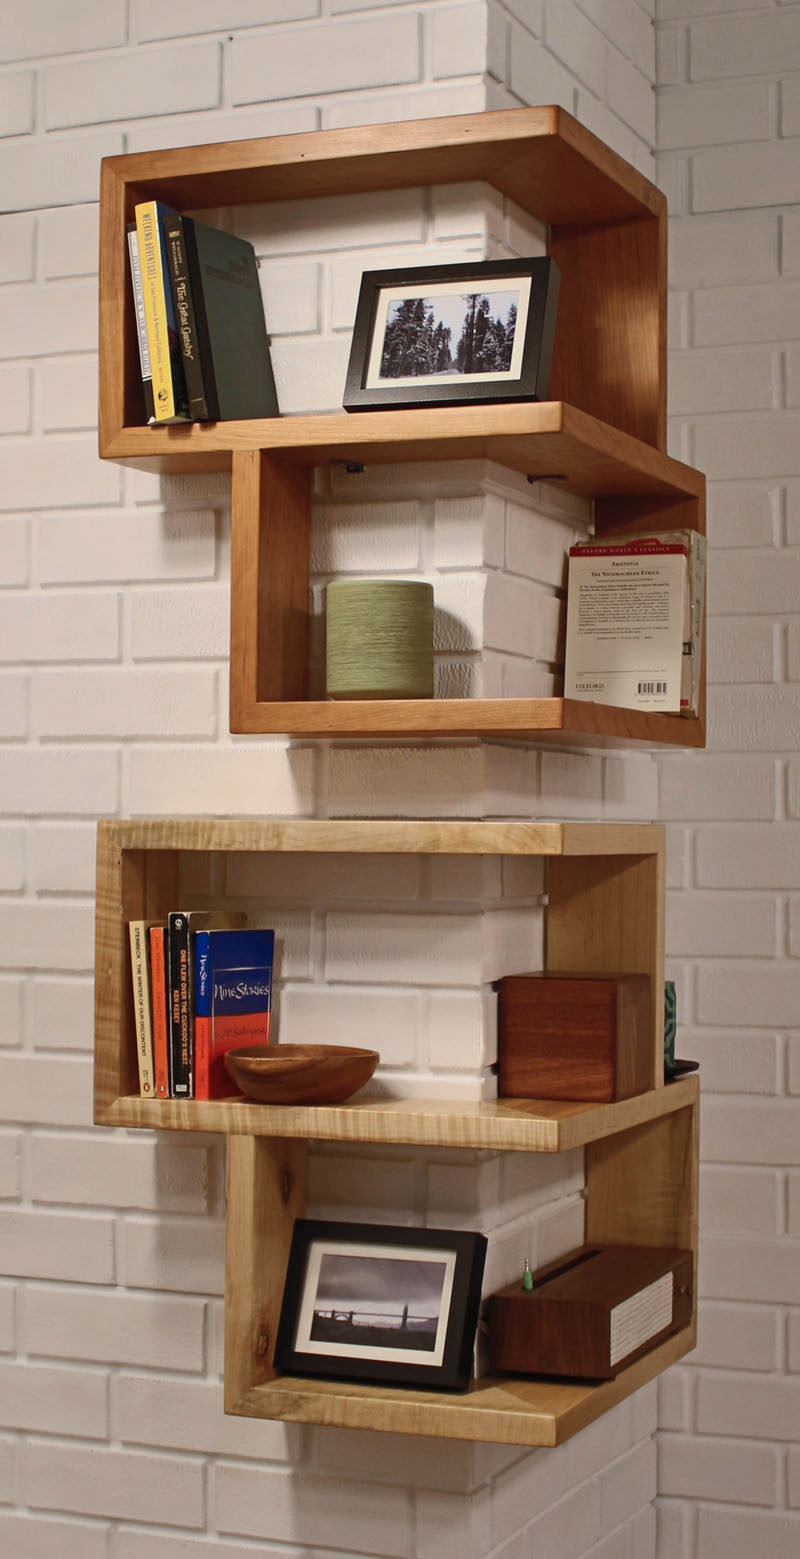 wrap-around-shelves_070816_02-800x1559